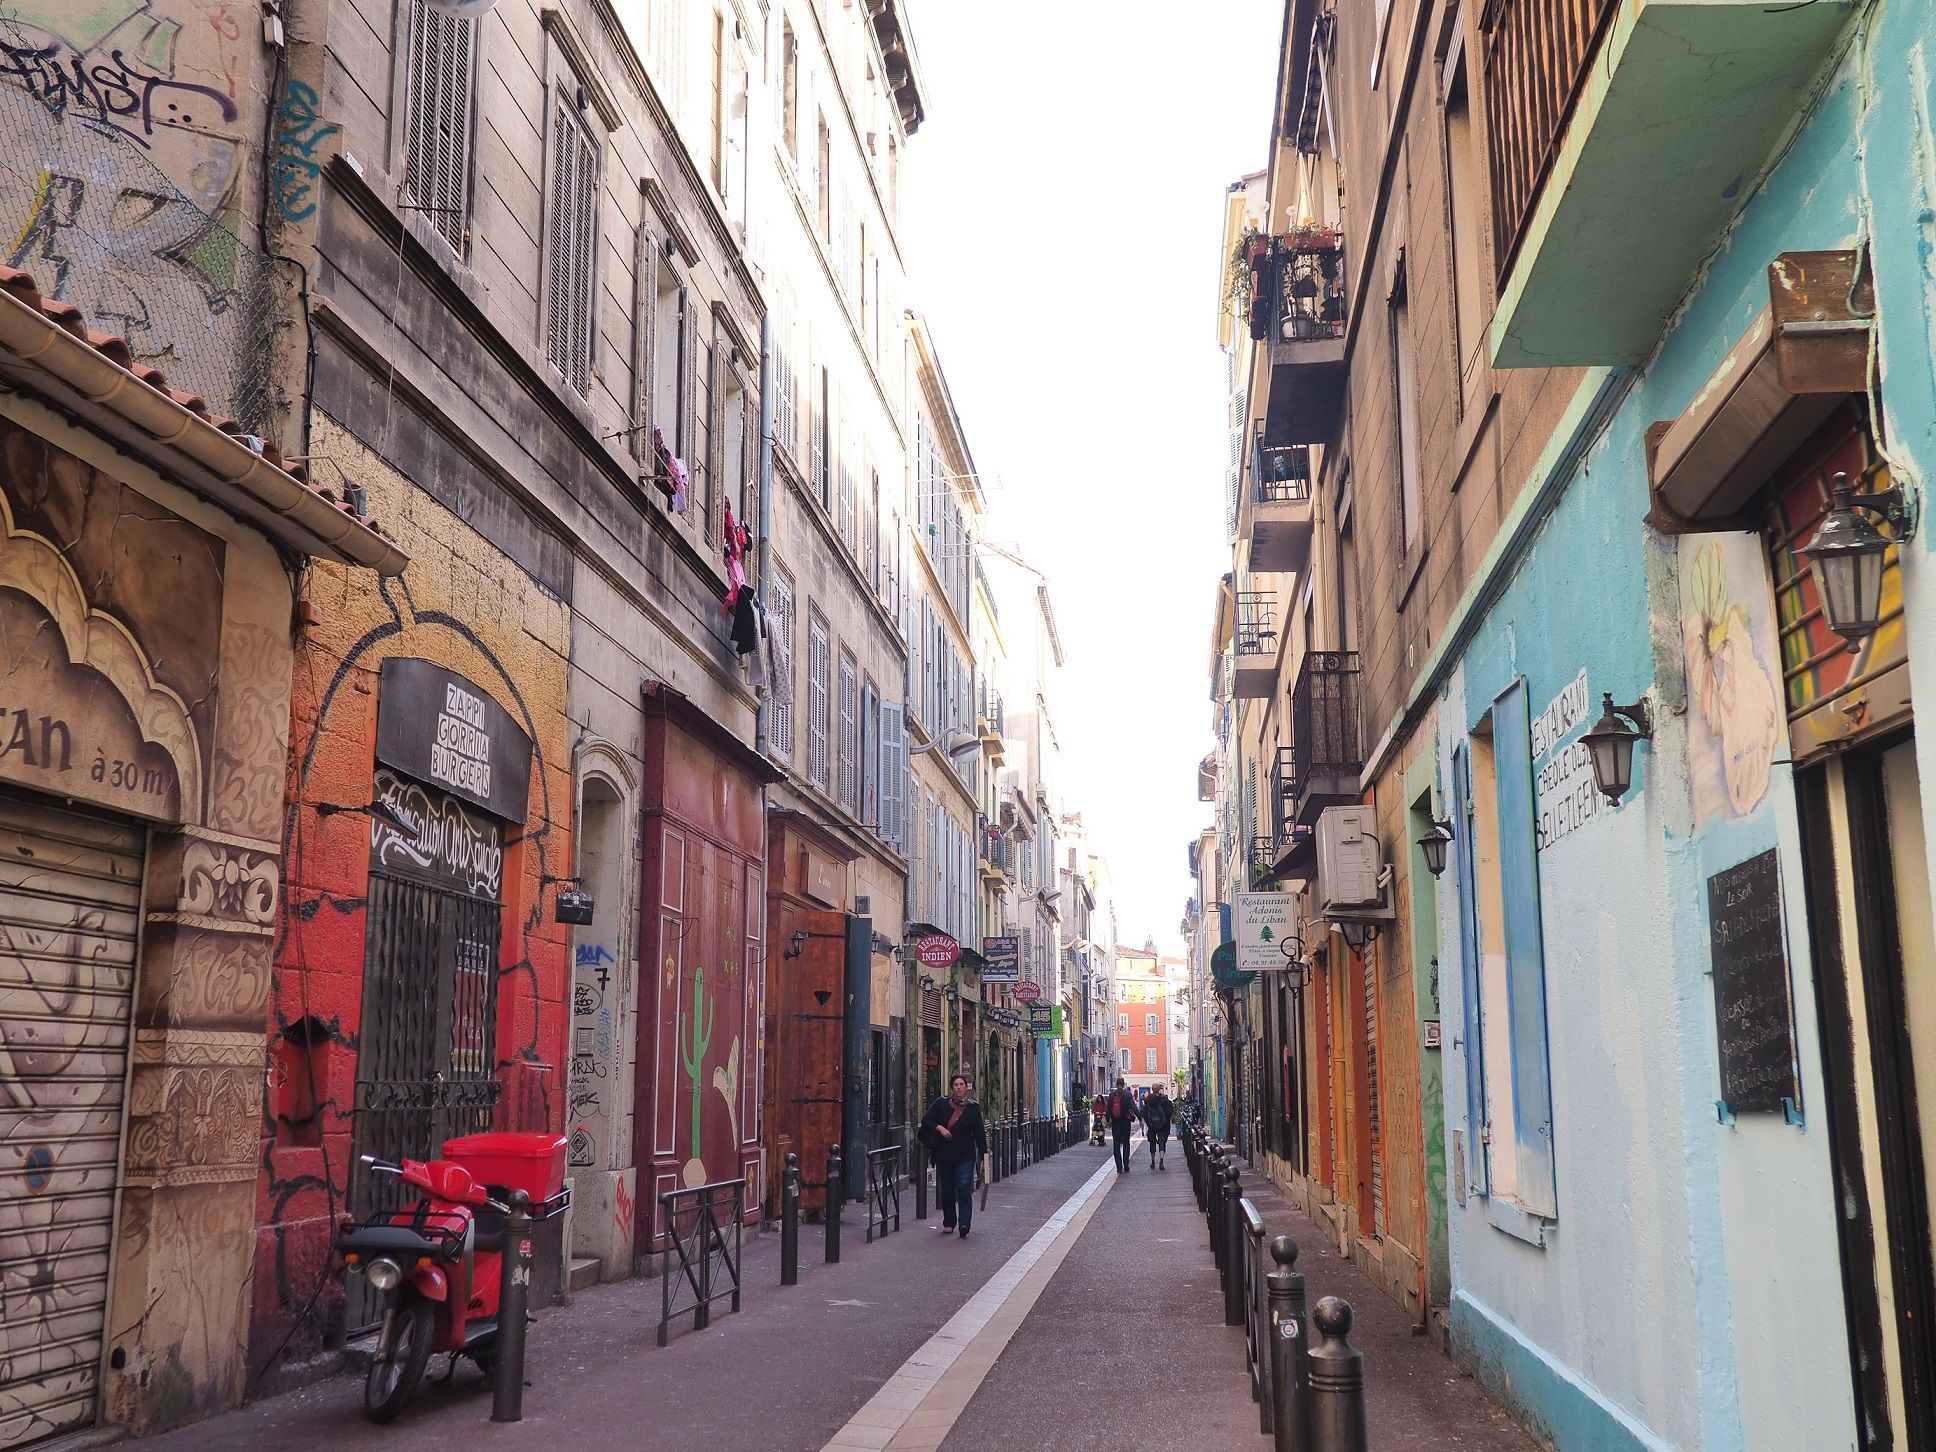 Marseille - City of colors and flavors